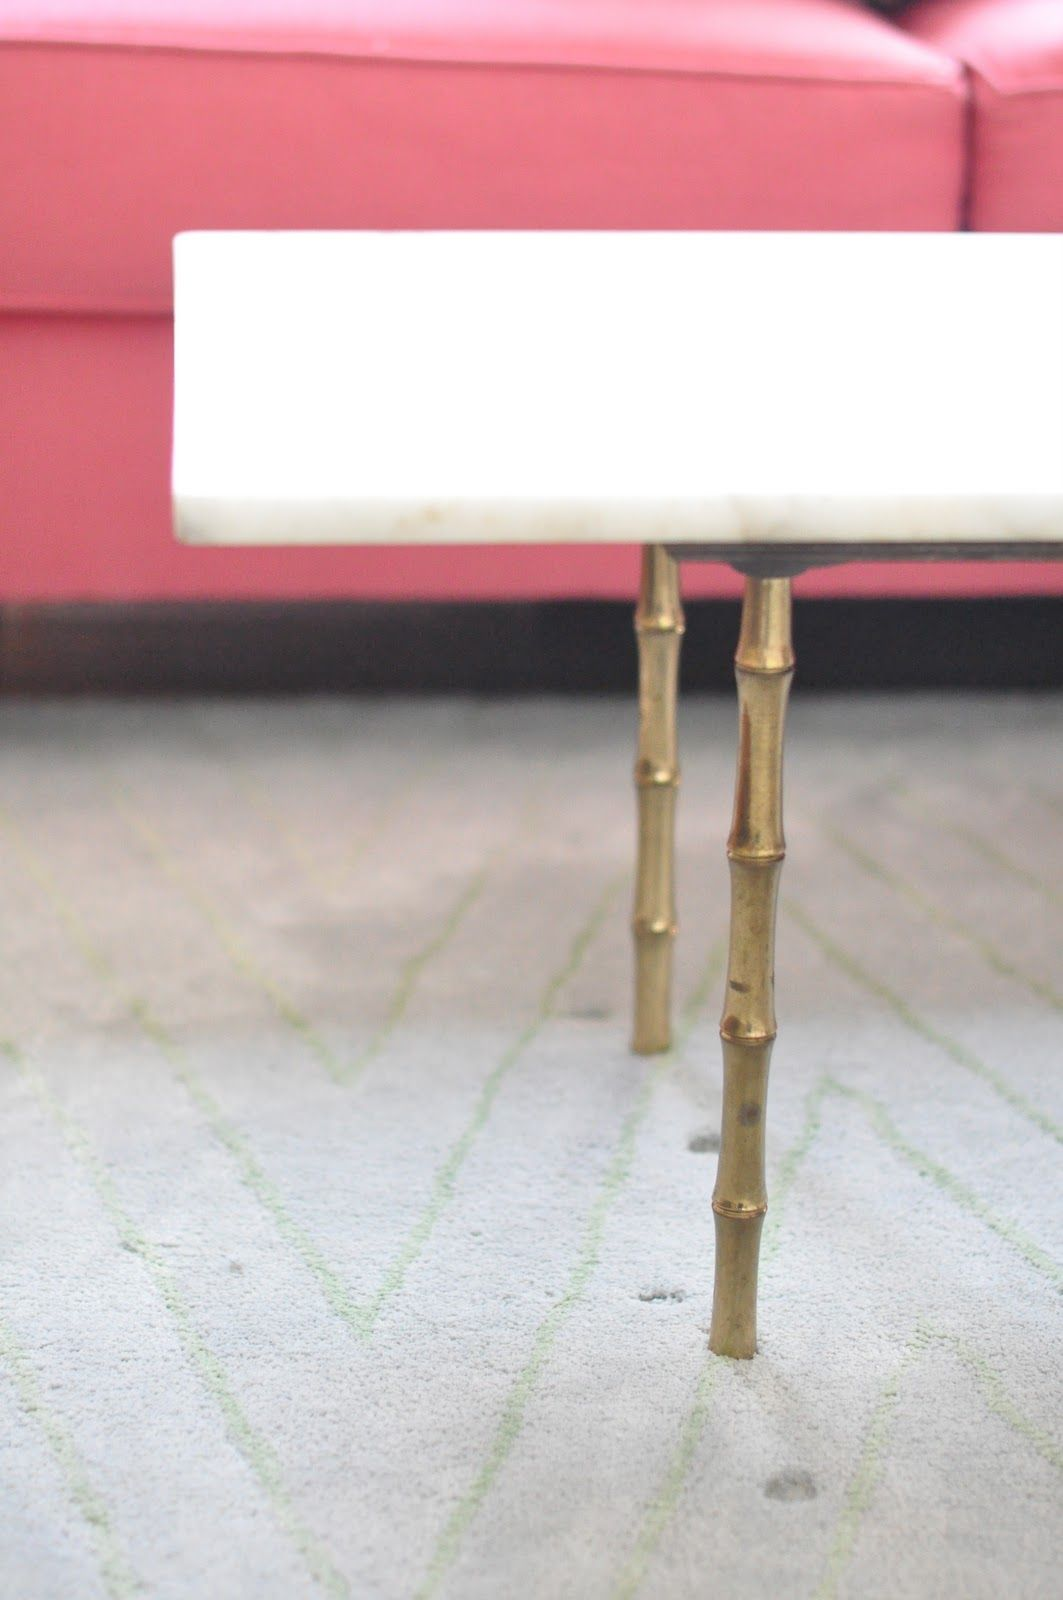 Gold Bamboo Table Legs For White Shelf Tables Also An Idea Vanity But Where Too Get These